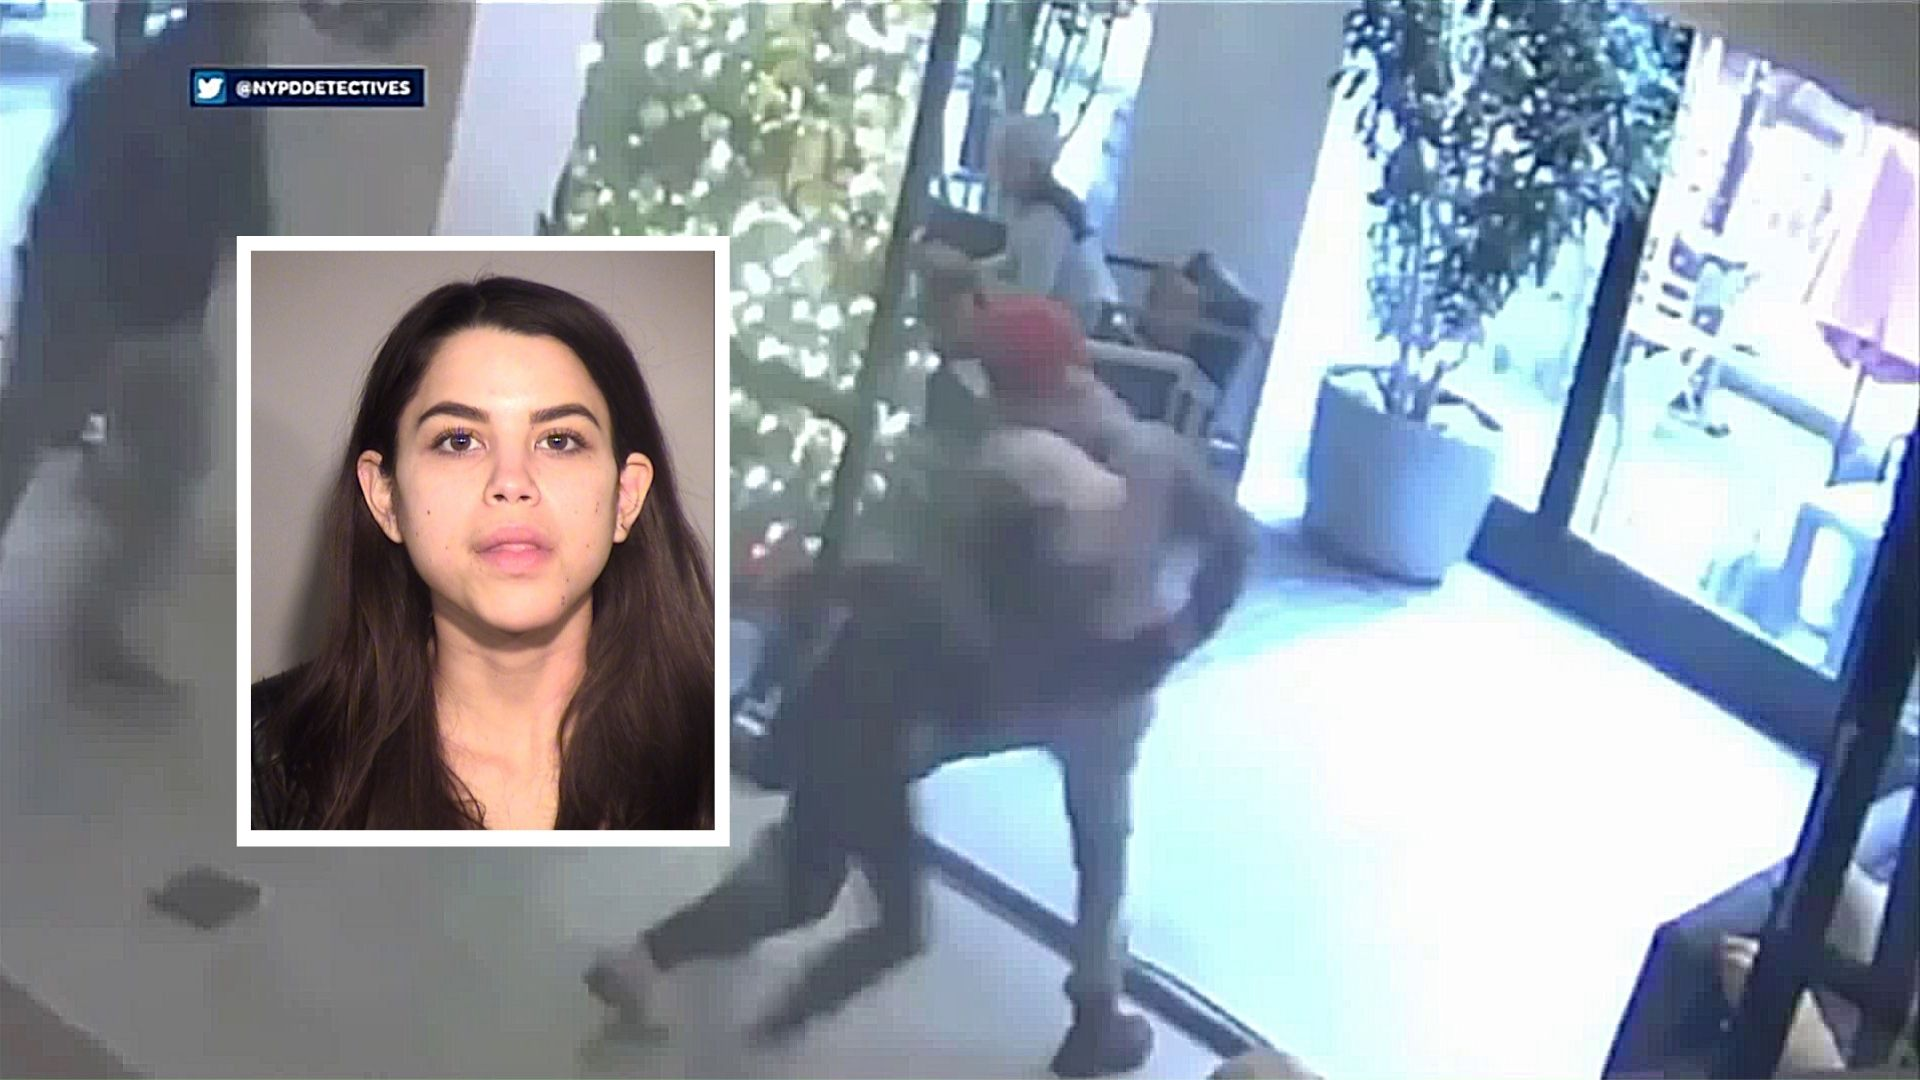 Photo of Miya Ponsetto overlaid on a surveillance photo of Ponsetto tackling a Black teenager who she falsely accused of stealing her phone